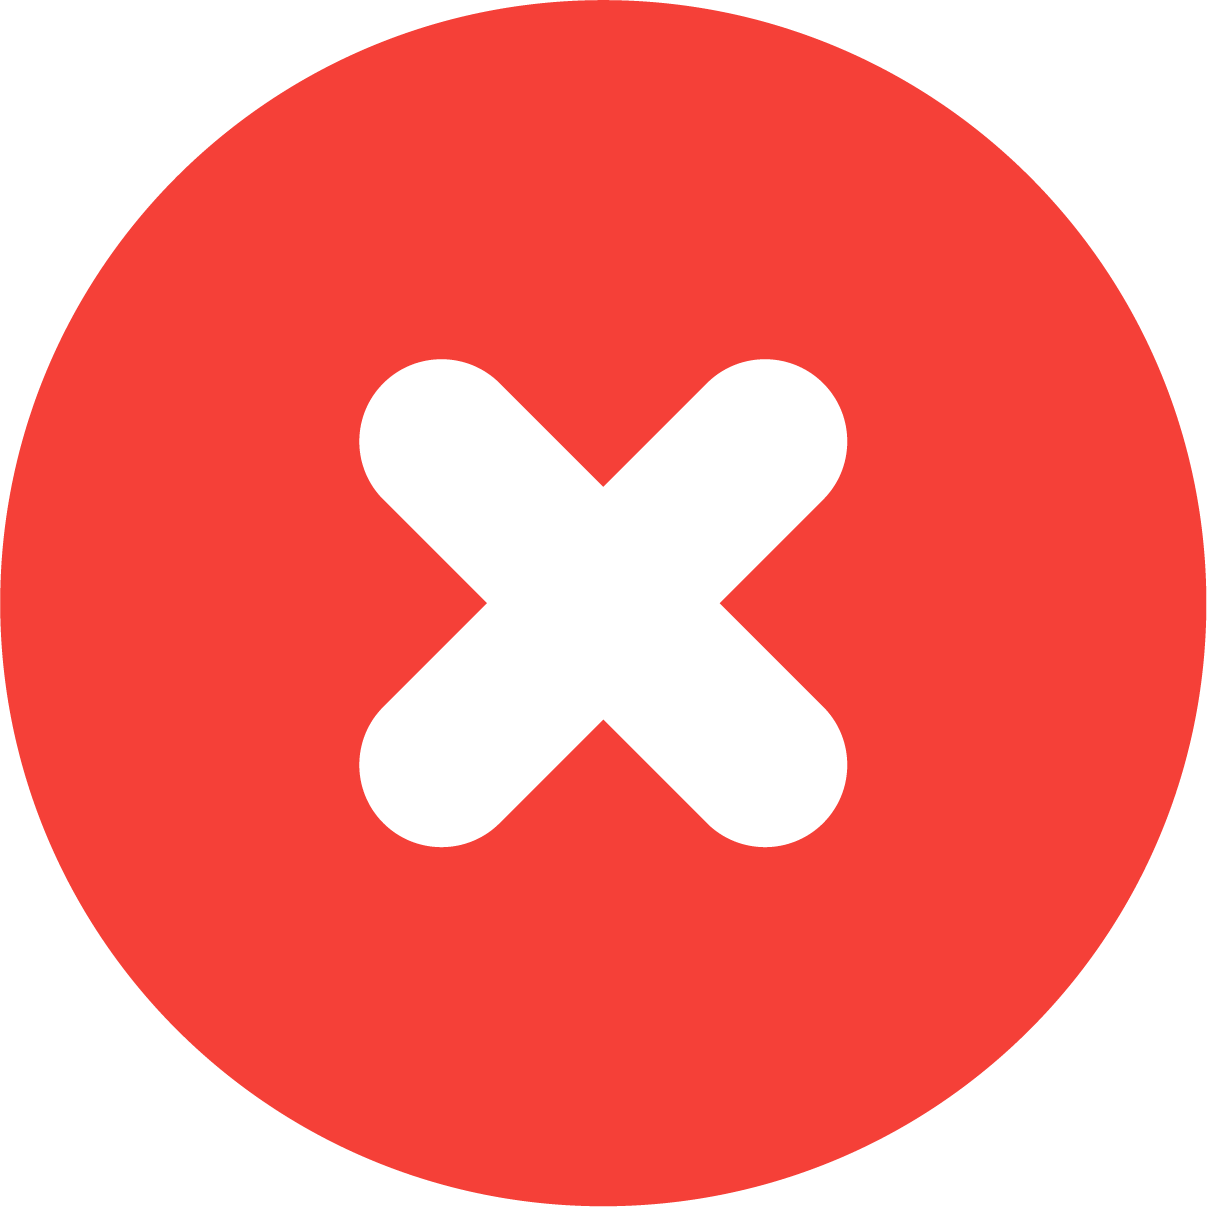 Red X icon